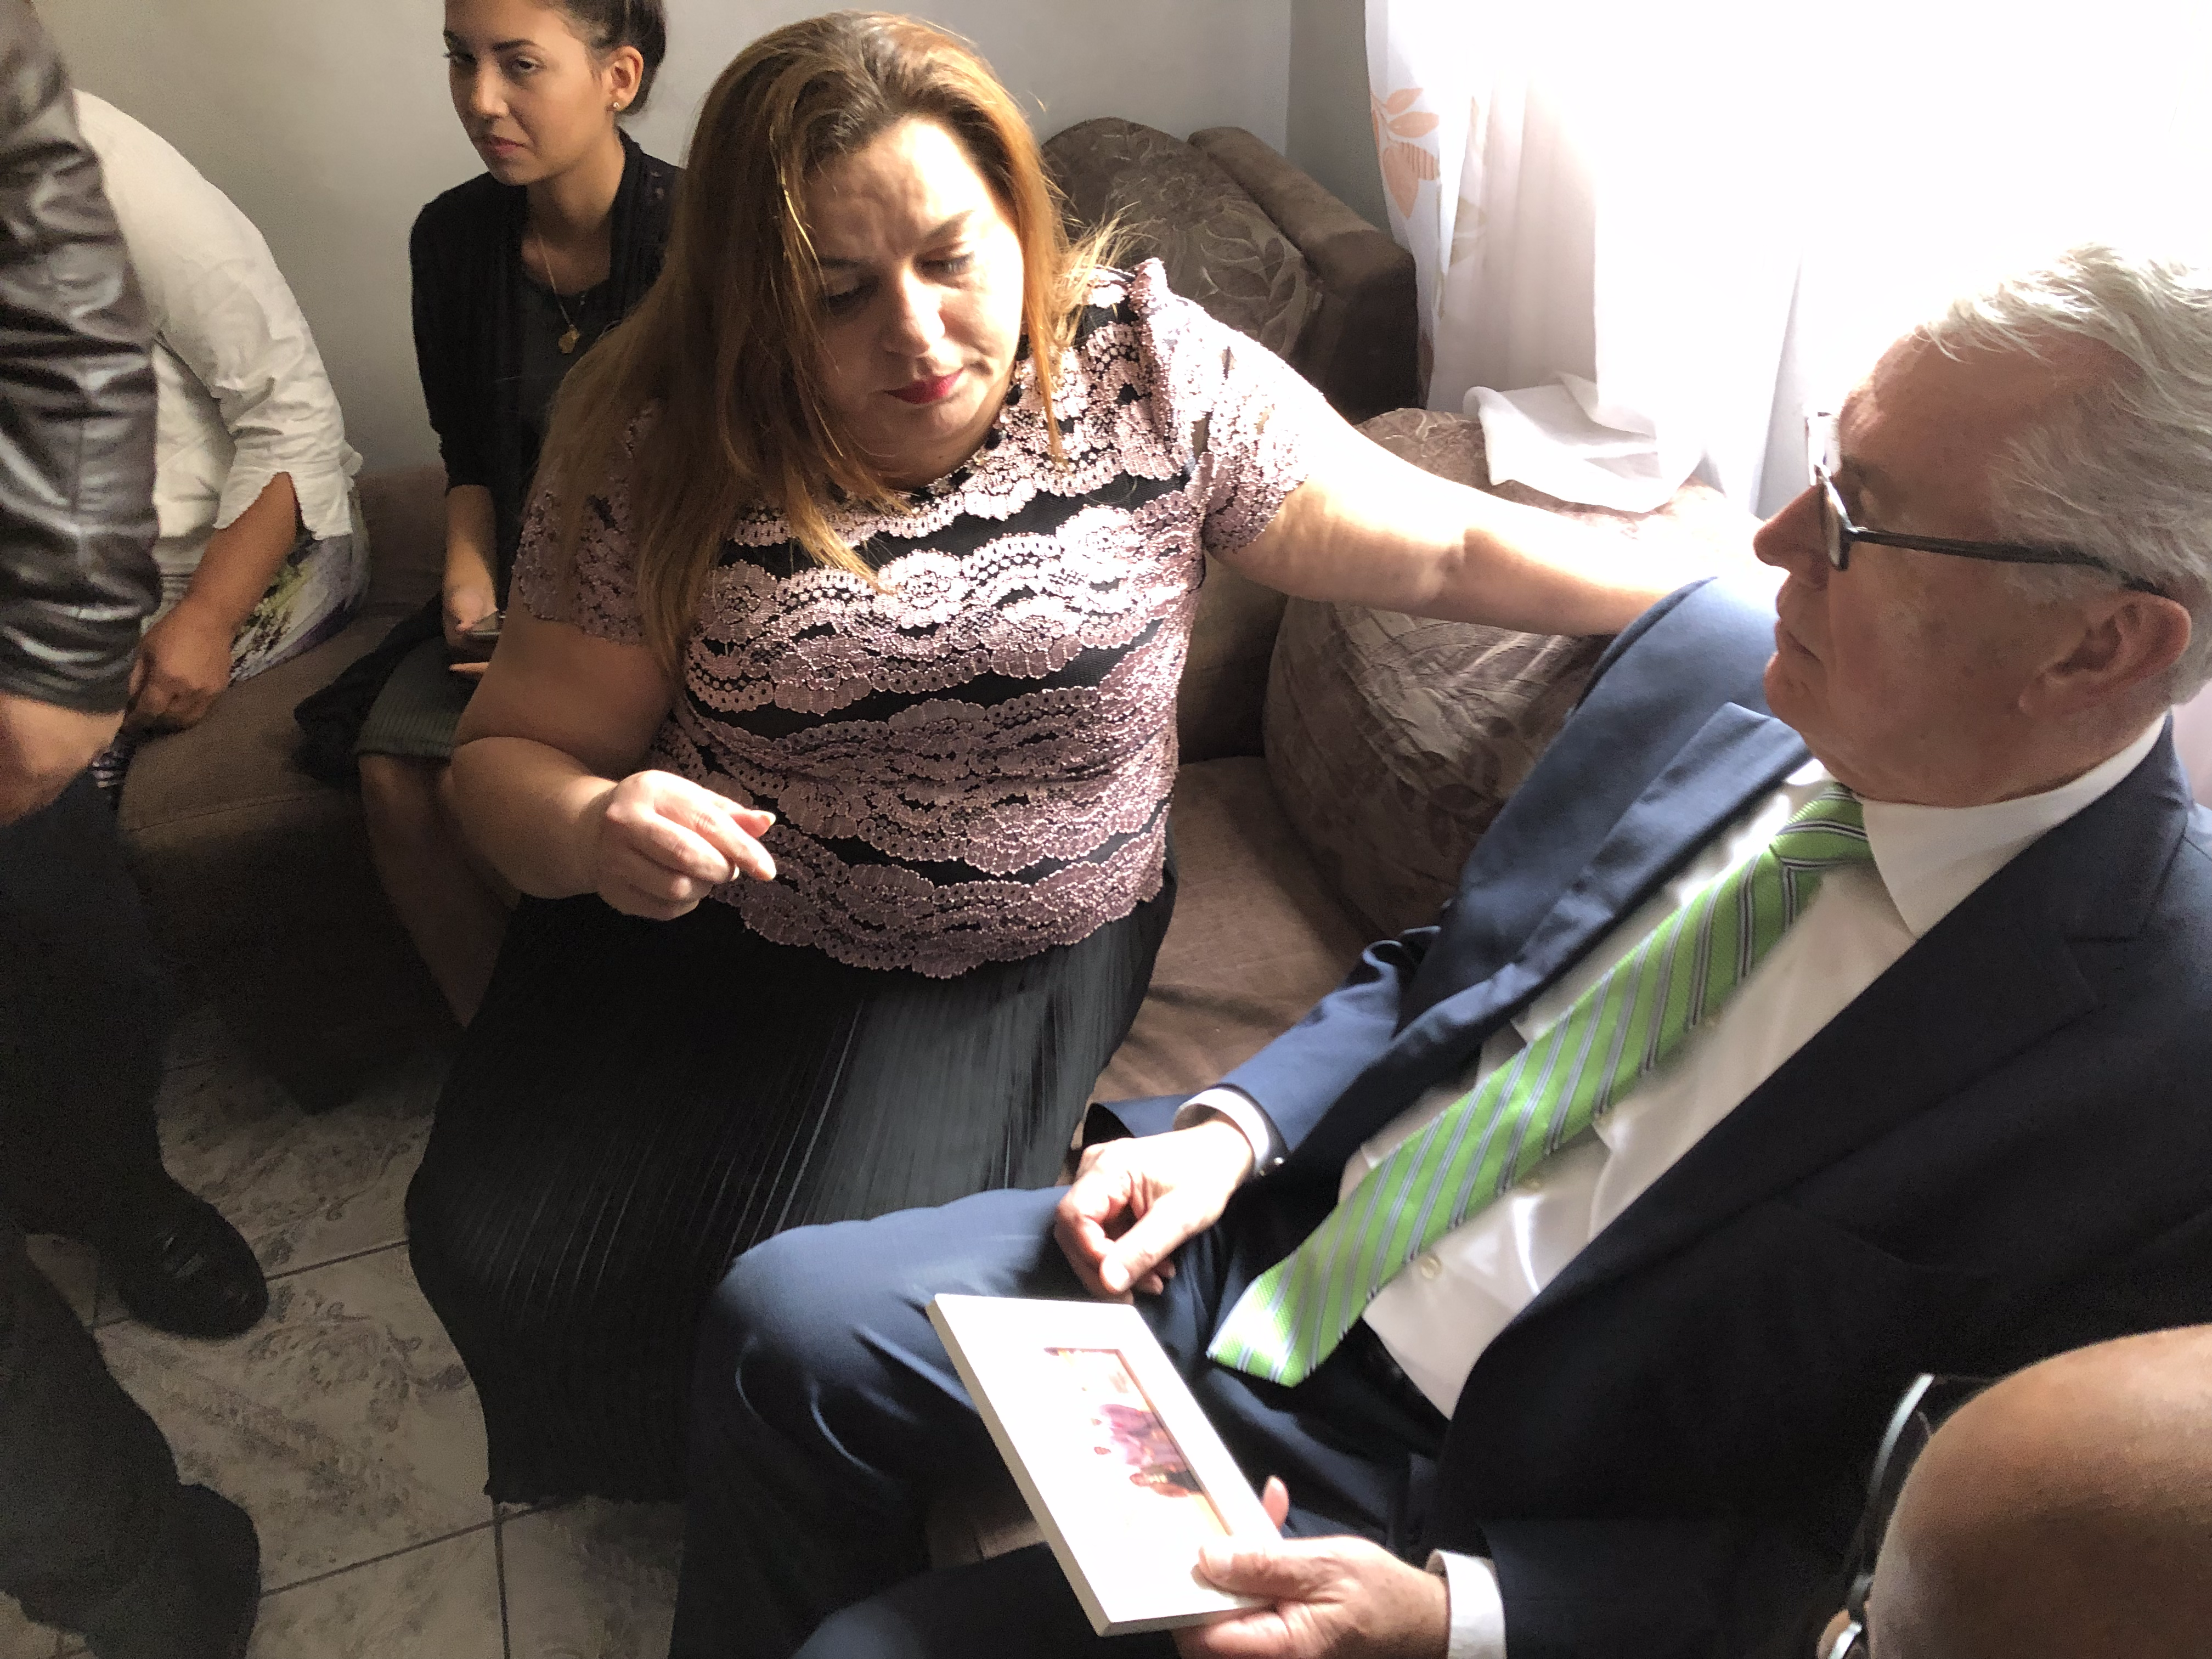 Elder Dieter F. Uchtdorf of the Quorum of the Twelve Apostles, right, listens to Rusana Gondim Rodrigues in the Gondim home in Sao Paulo, Brazil, on Feb. 17, 2019. Her son, Elder Joao Gondim, passed away Jan. 28, 2019, while serving in the Portugal Lisbon Mission, and Elder Uchtdorf sought out the grieving family at their meetinghouse and in their home during his recent two-week assignment in Brazil.